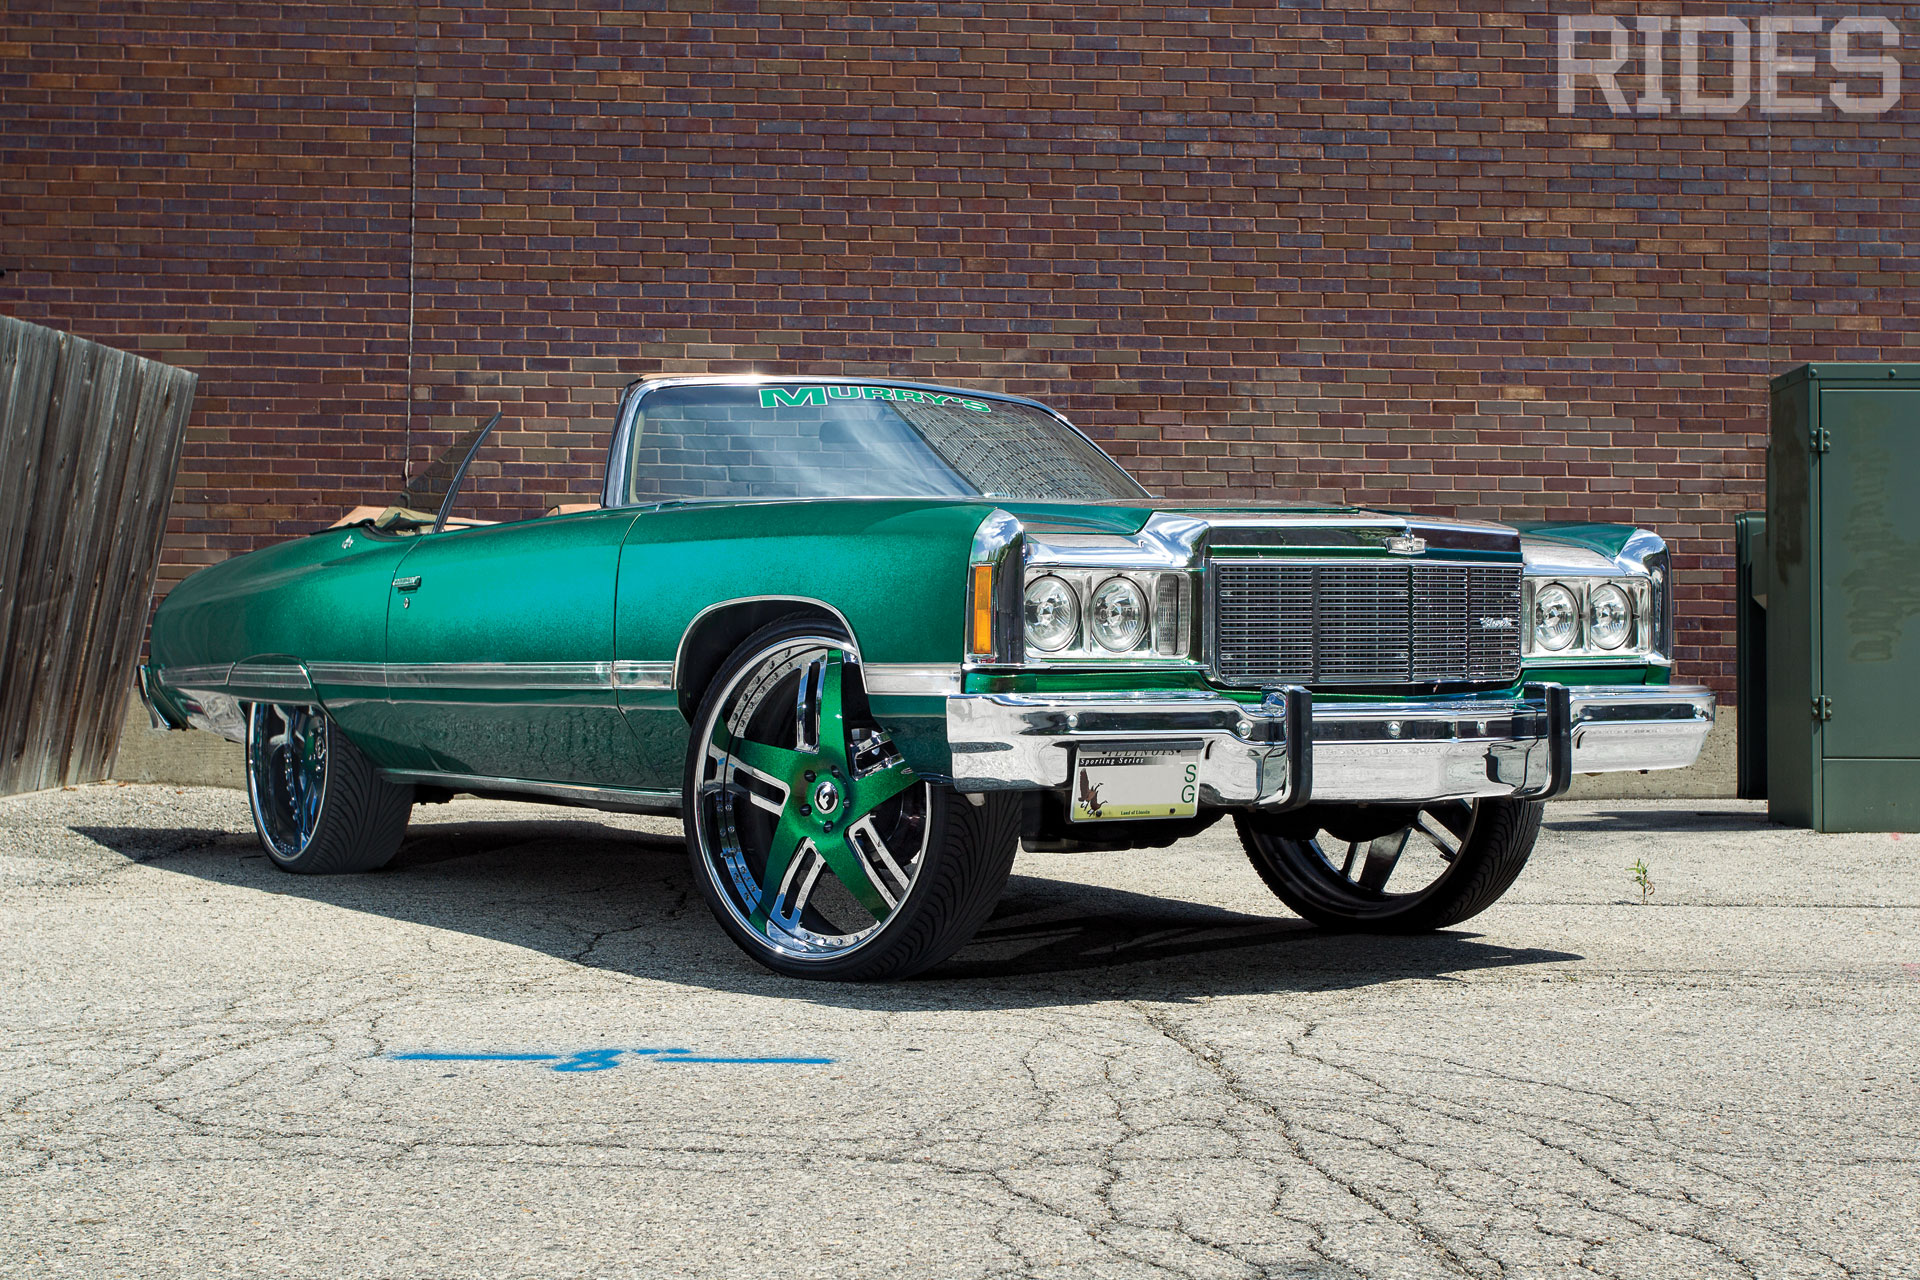 rides cars chevy chevrolet green-donk-74-caprice-wallpaper murry's customs